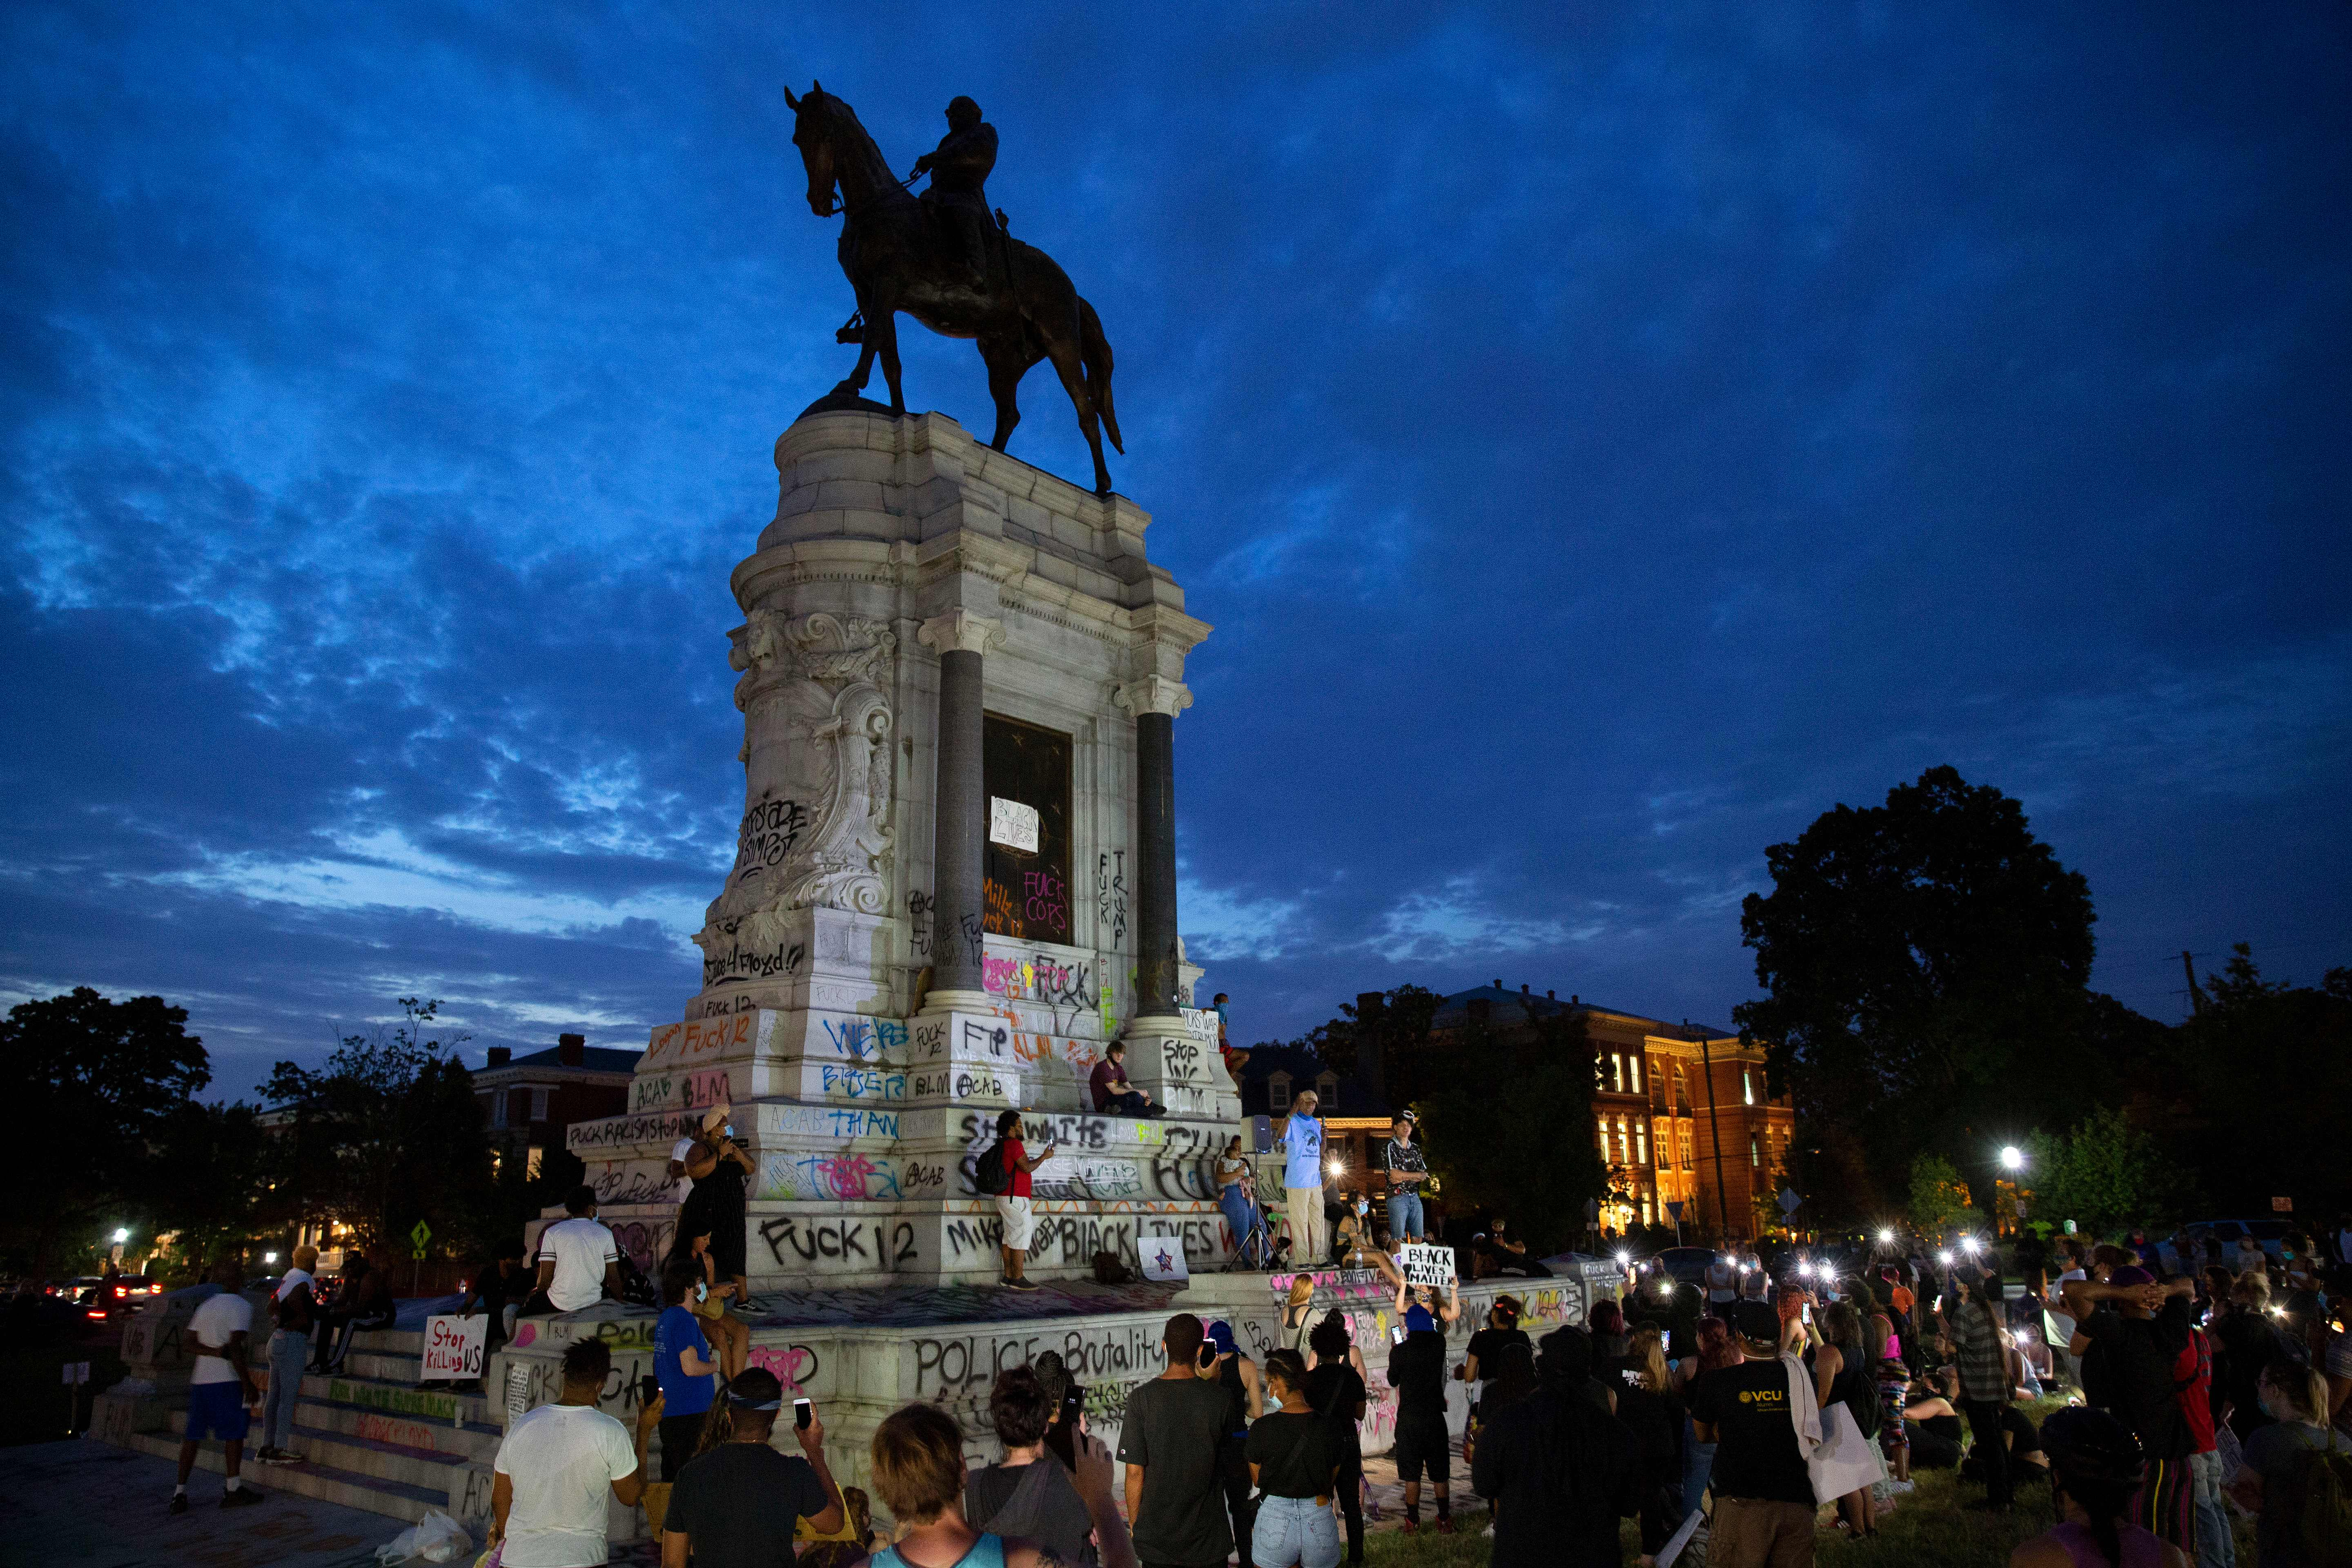 People gather around the Robert E. Lee statue on Monument Avenue in Richmond, Virginia, on June 4, 2020, amid continued protests over the death of George Floyd in police custody. (Photo: Ryan M. Kelly/AFP via Getty Images)